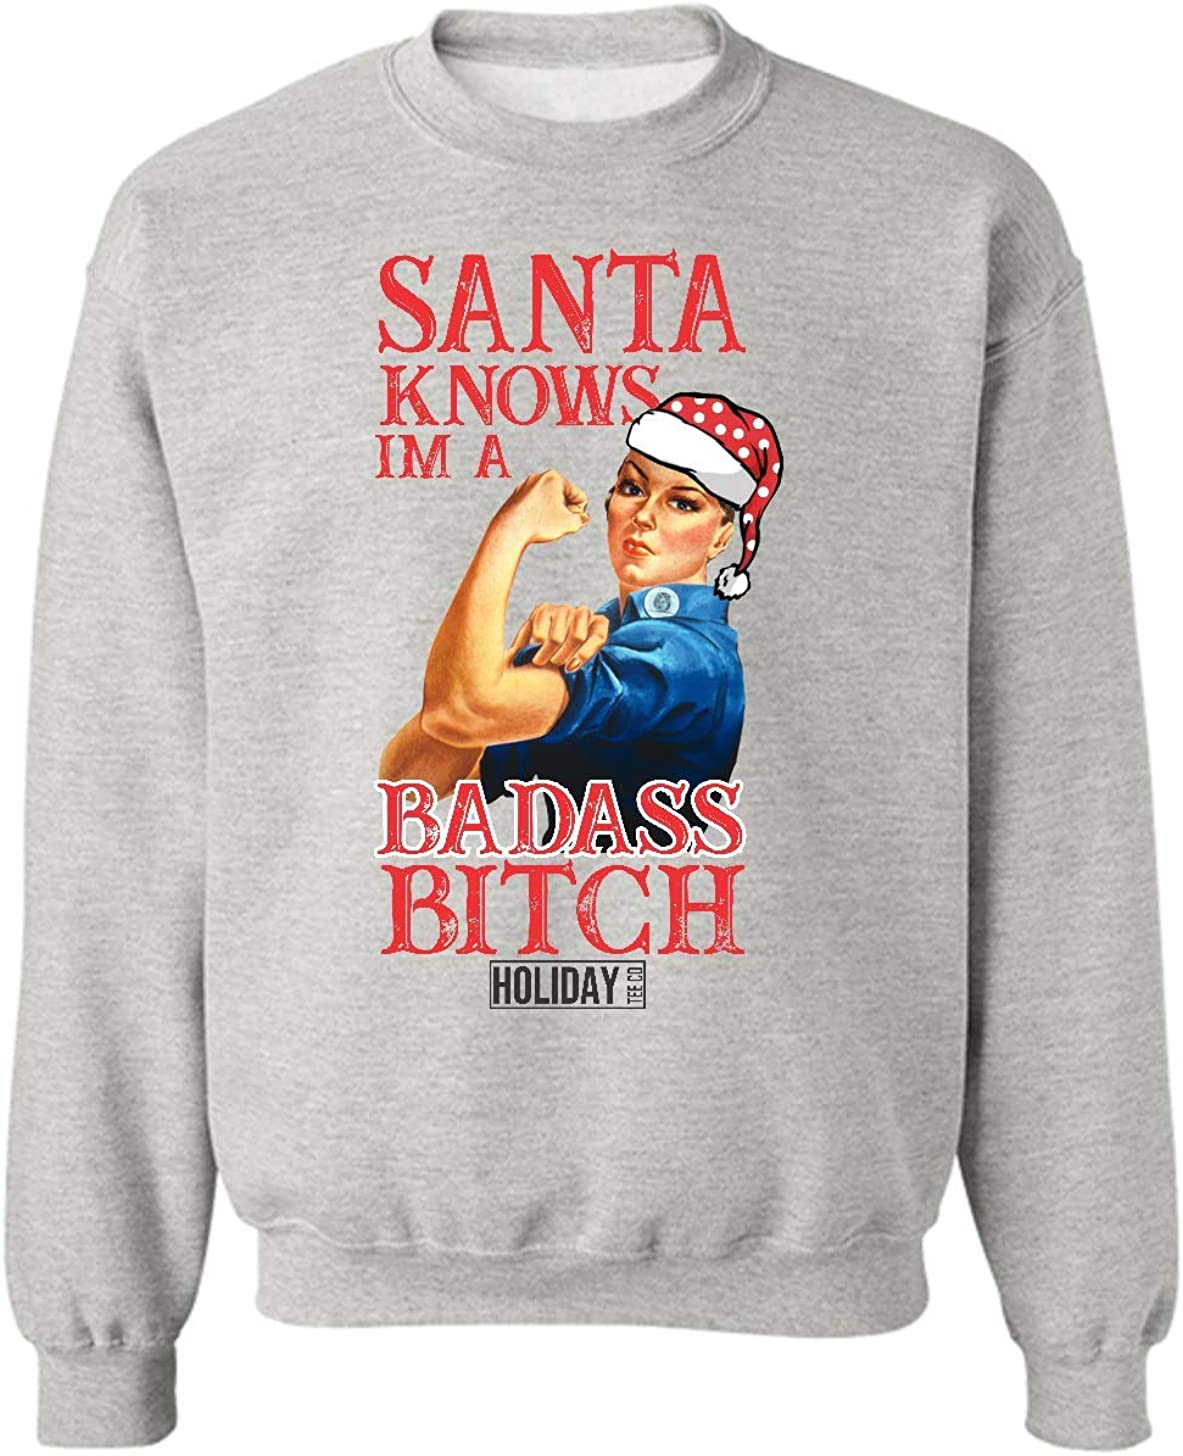 Made in USA Comfortable and Wears Well Christmas Sweater Santa Knows Im a Badass B Calling All Badasses